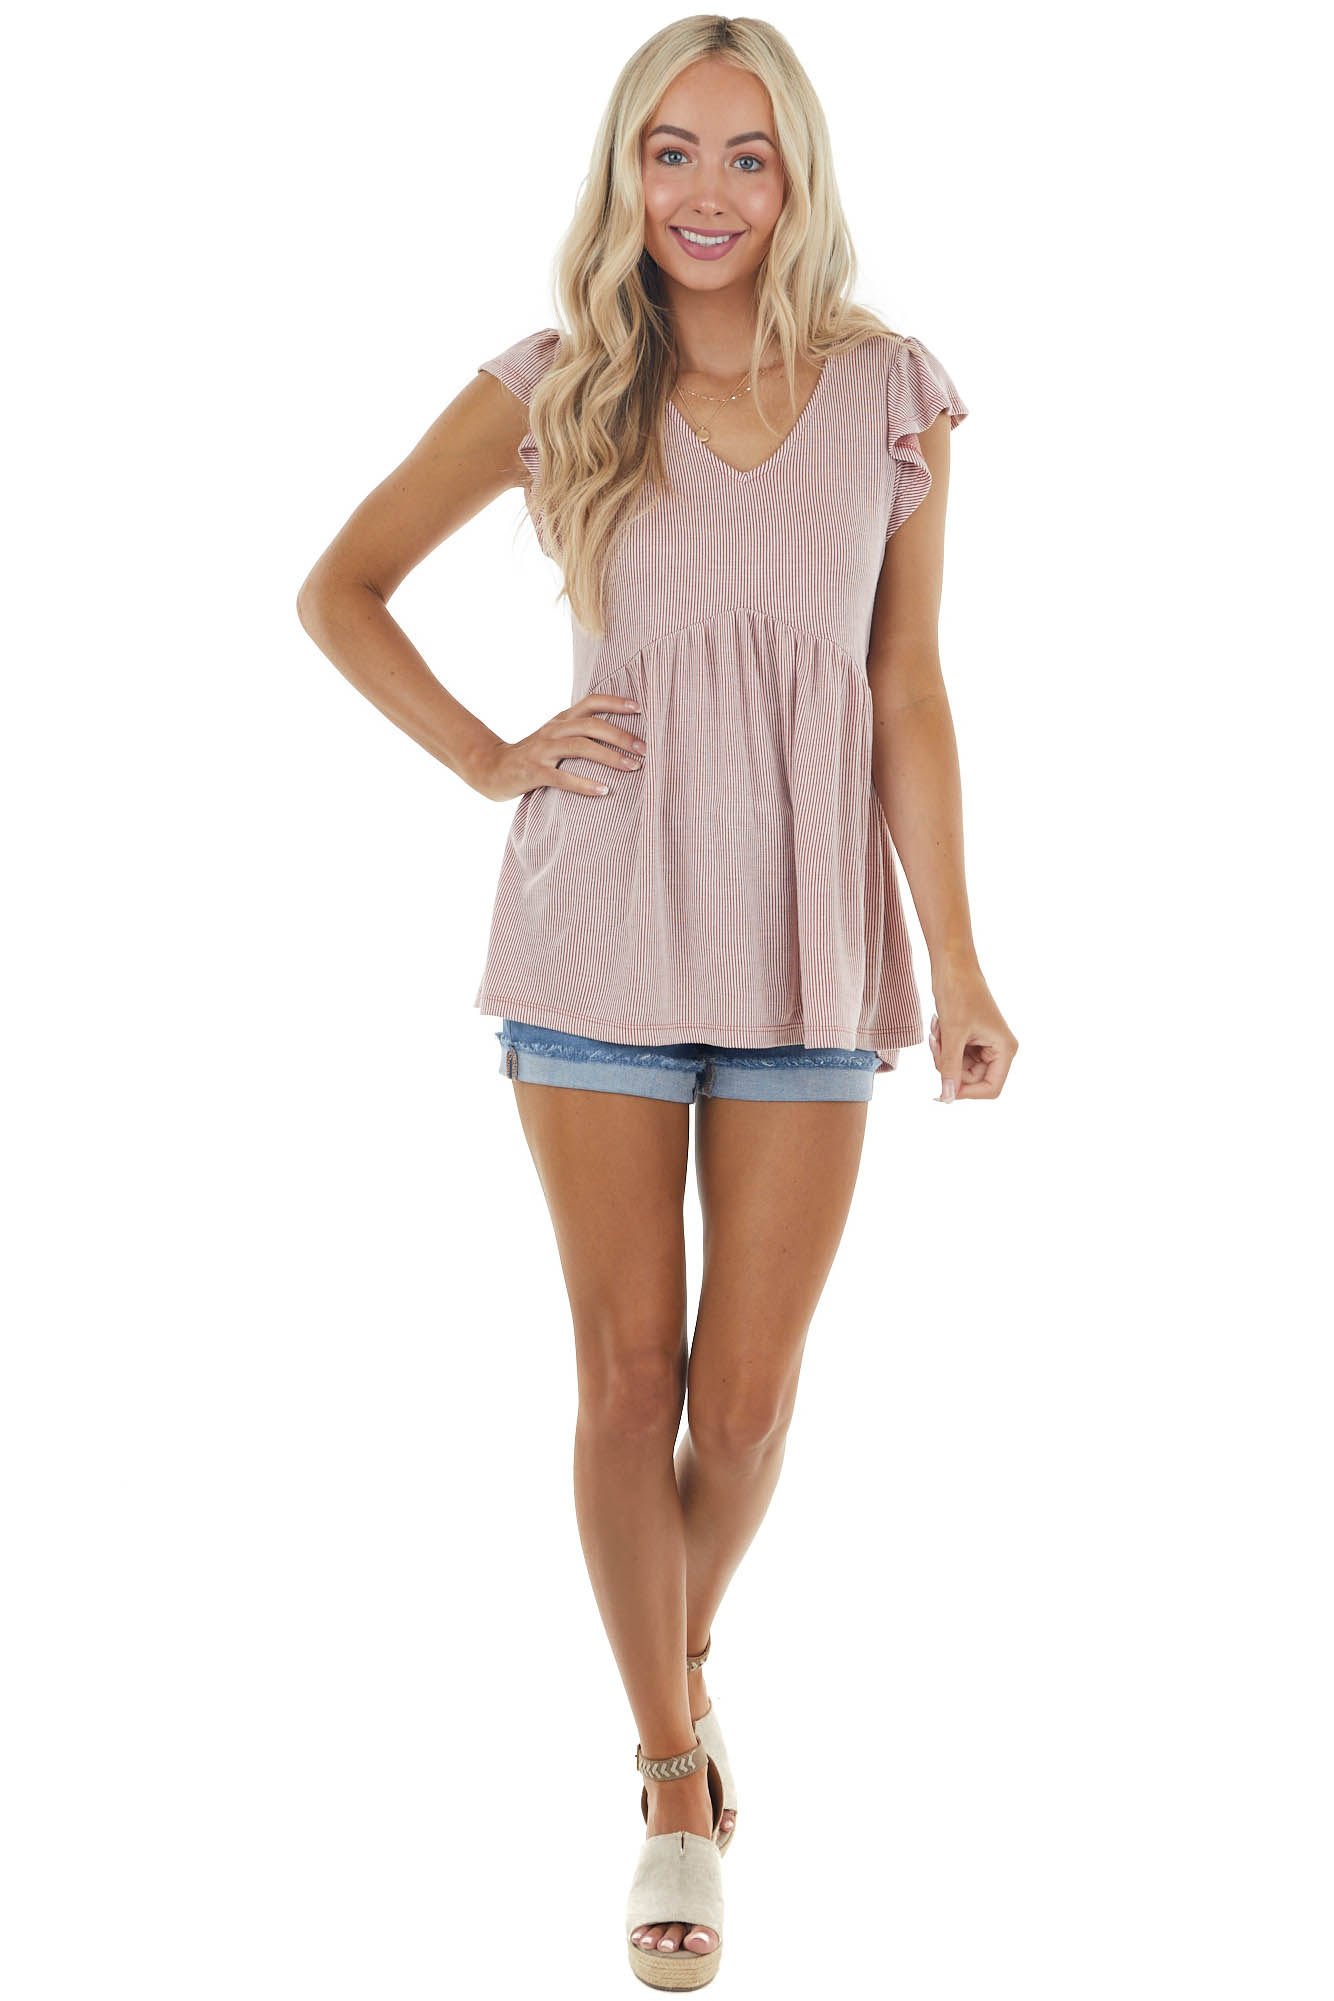 Terracotta Striped Babydoll Top with Ruffle Cap Sleeves